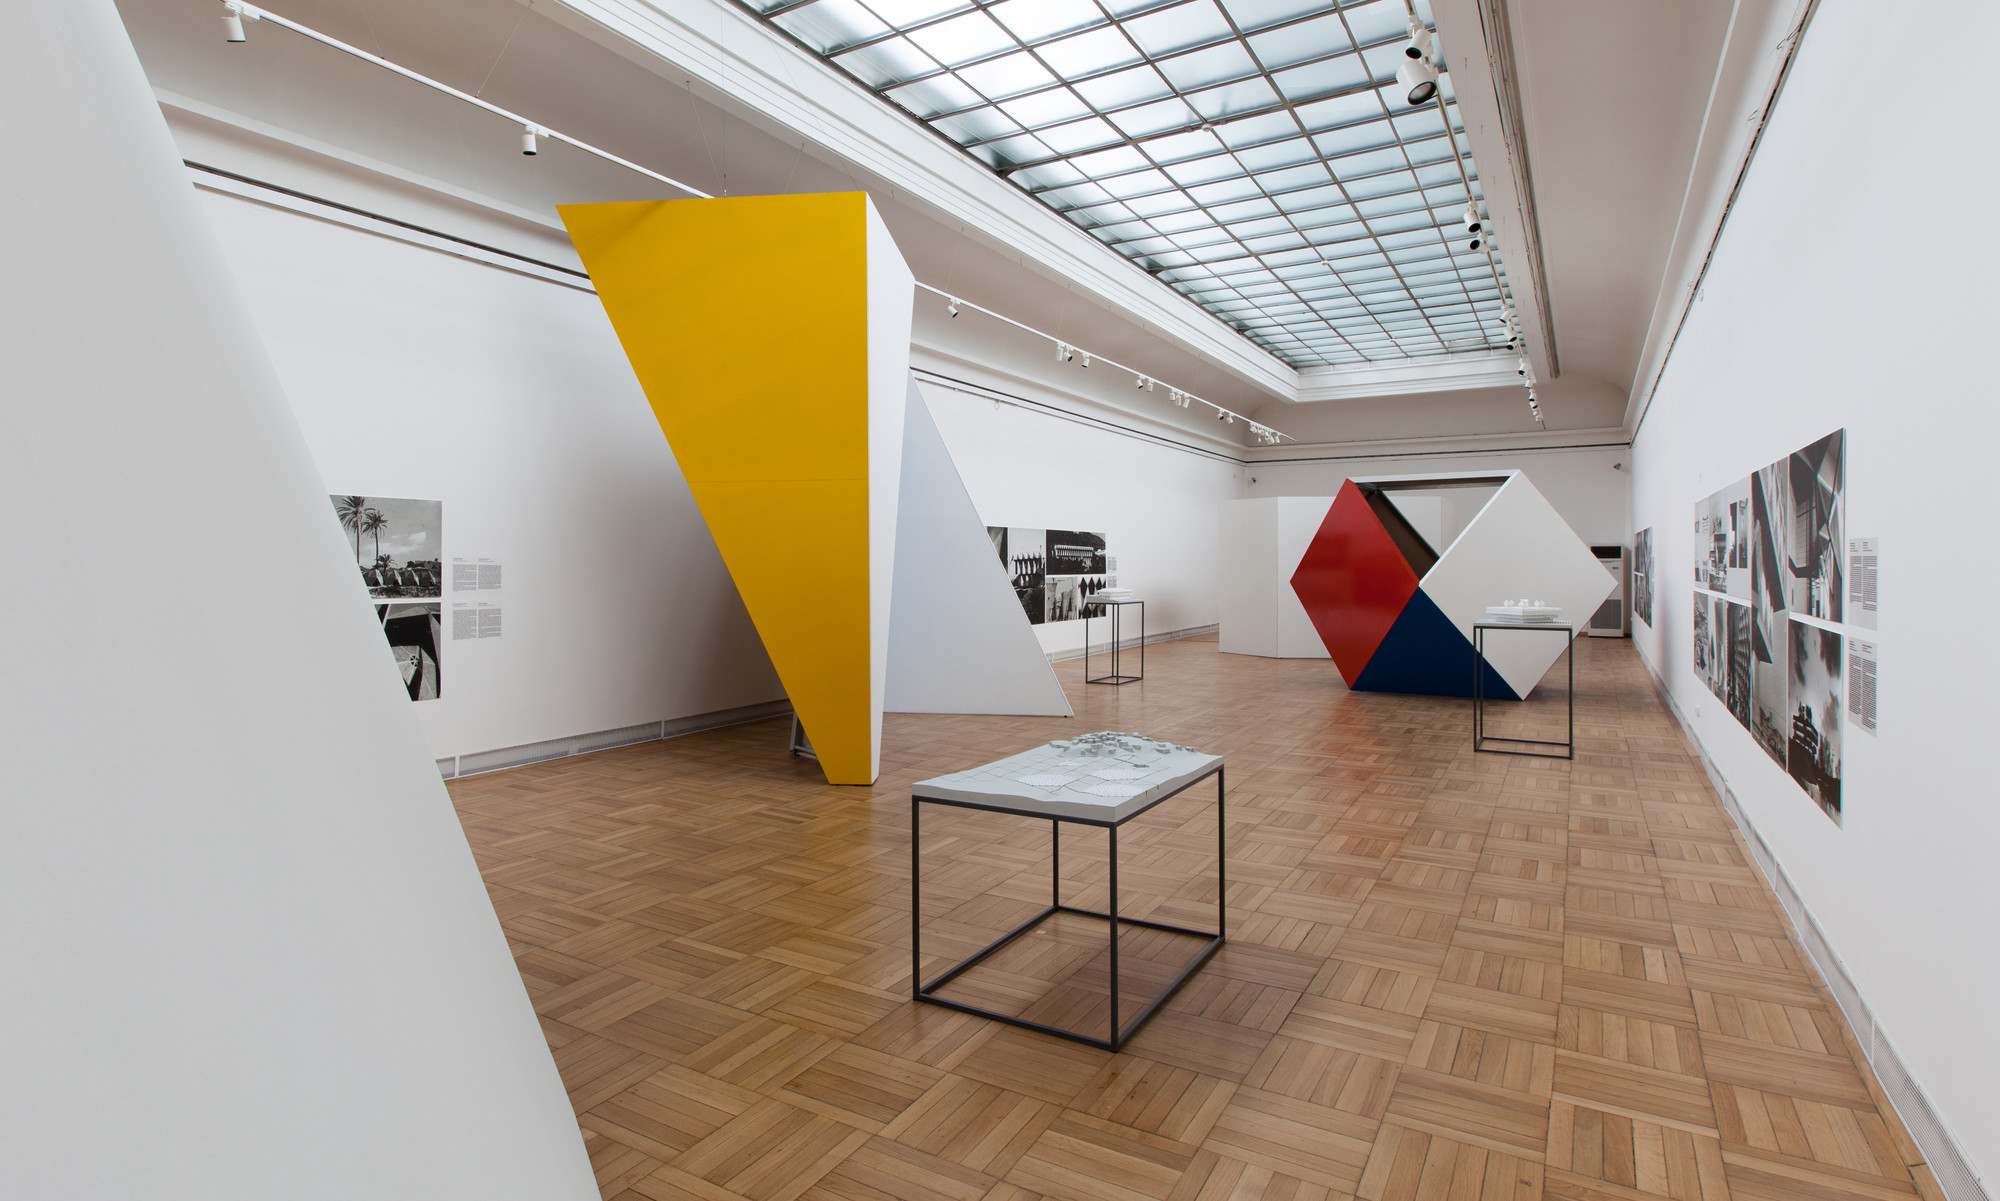 """Space Packing Architecture: The Life and Work of Alfred Neumann, """"Space Packing Architecture: The Life and Work of Alfred Neumann"""" at Gallery of Fine Art in Ostrava"""